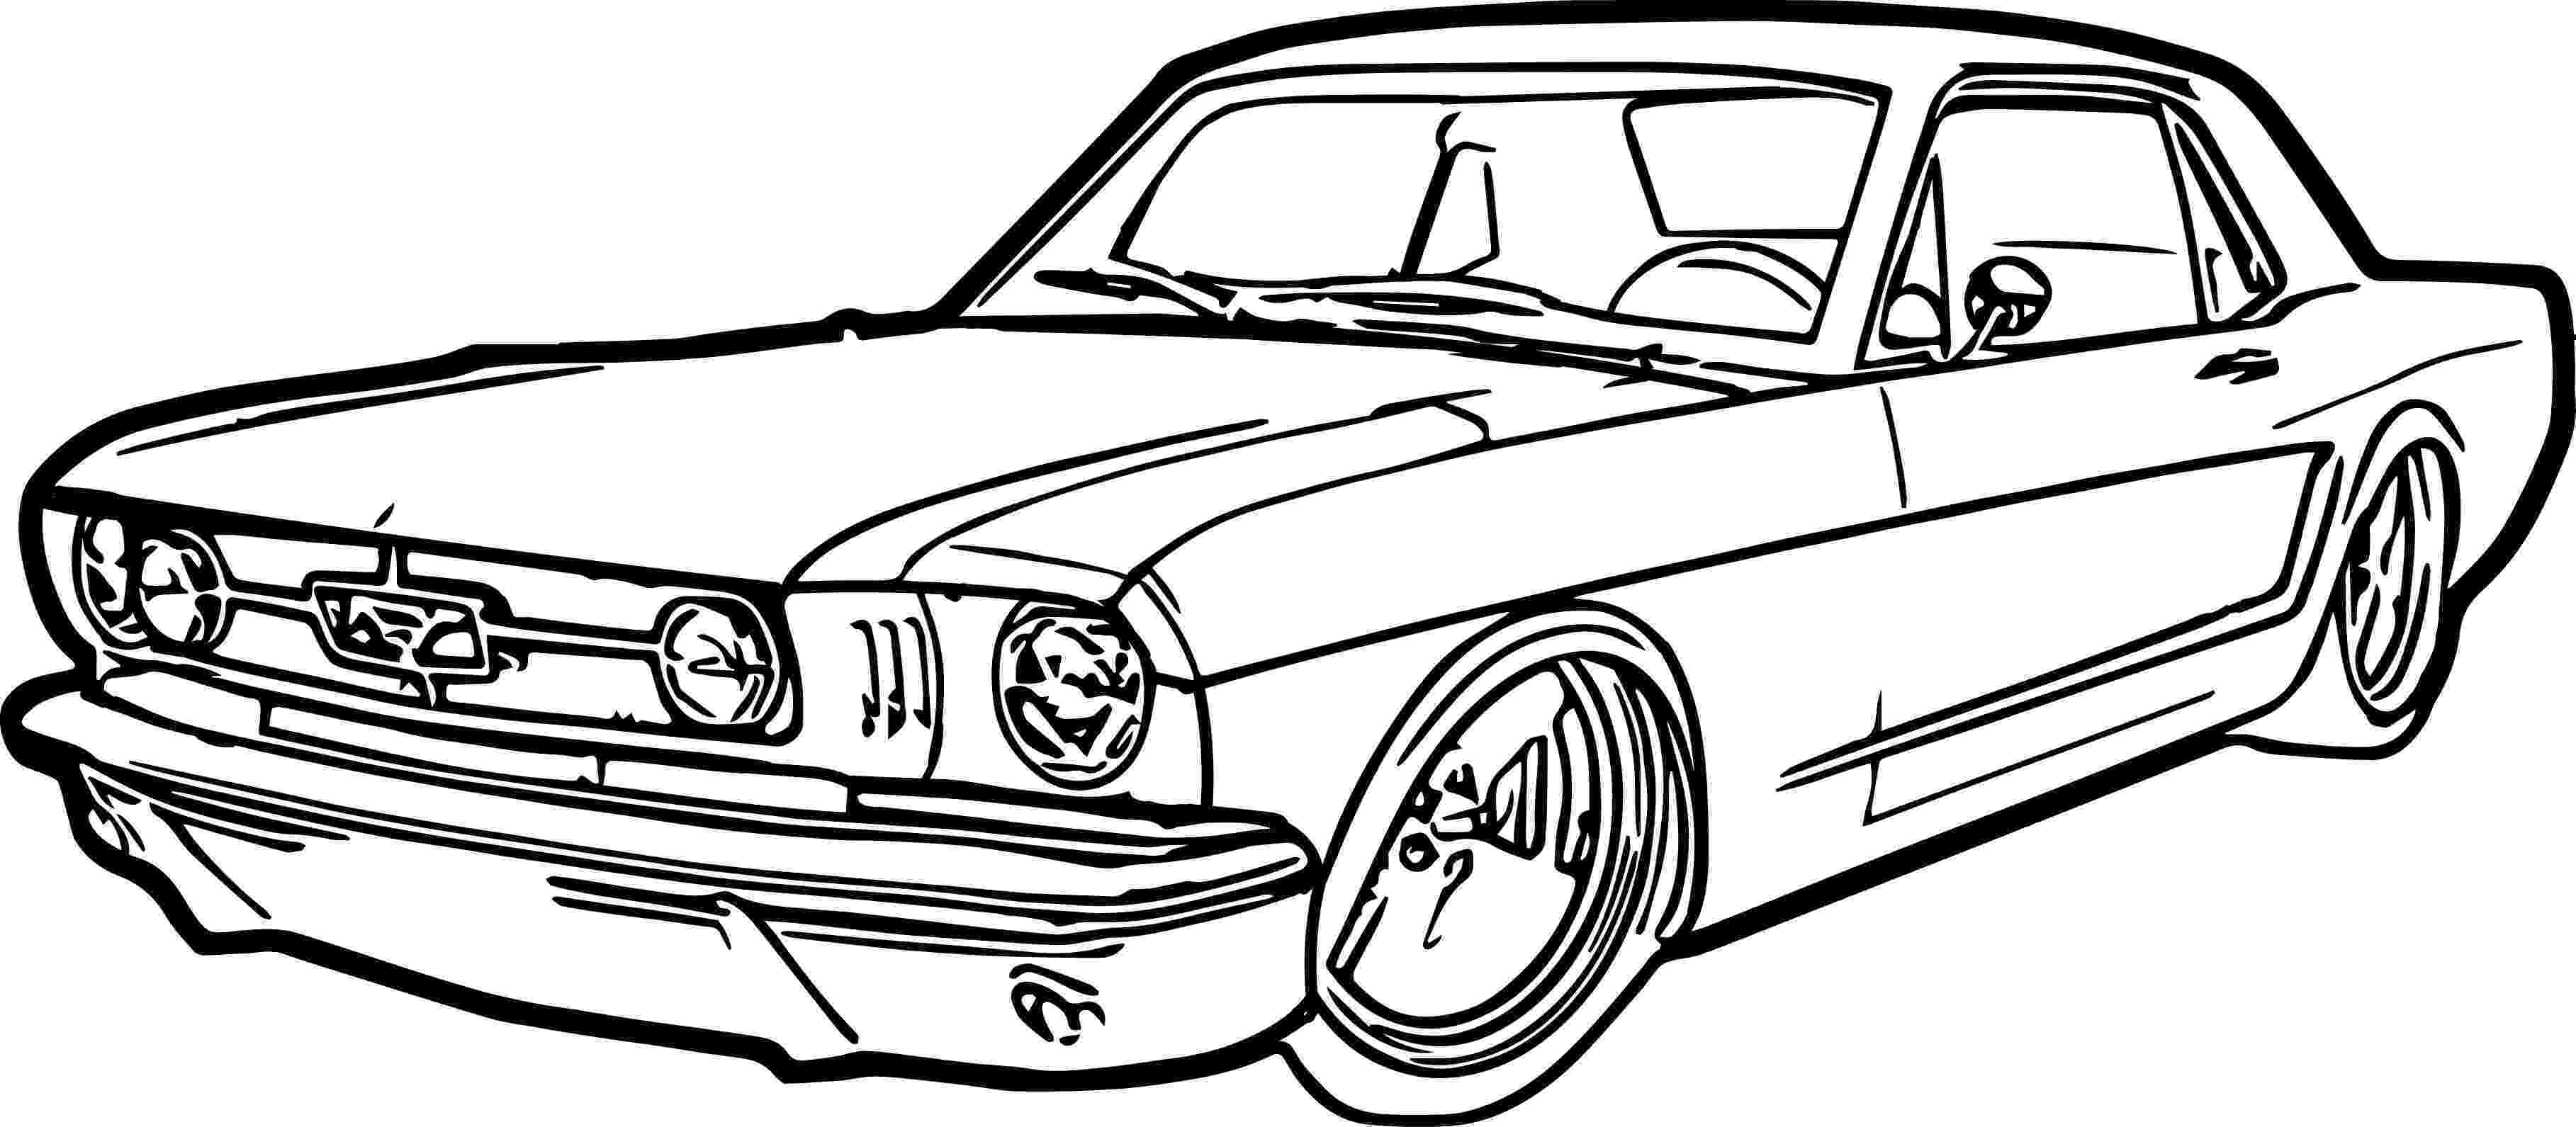 colouring pics of cars car coloring pages free download cars pics colouring of